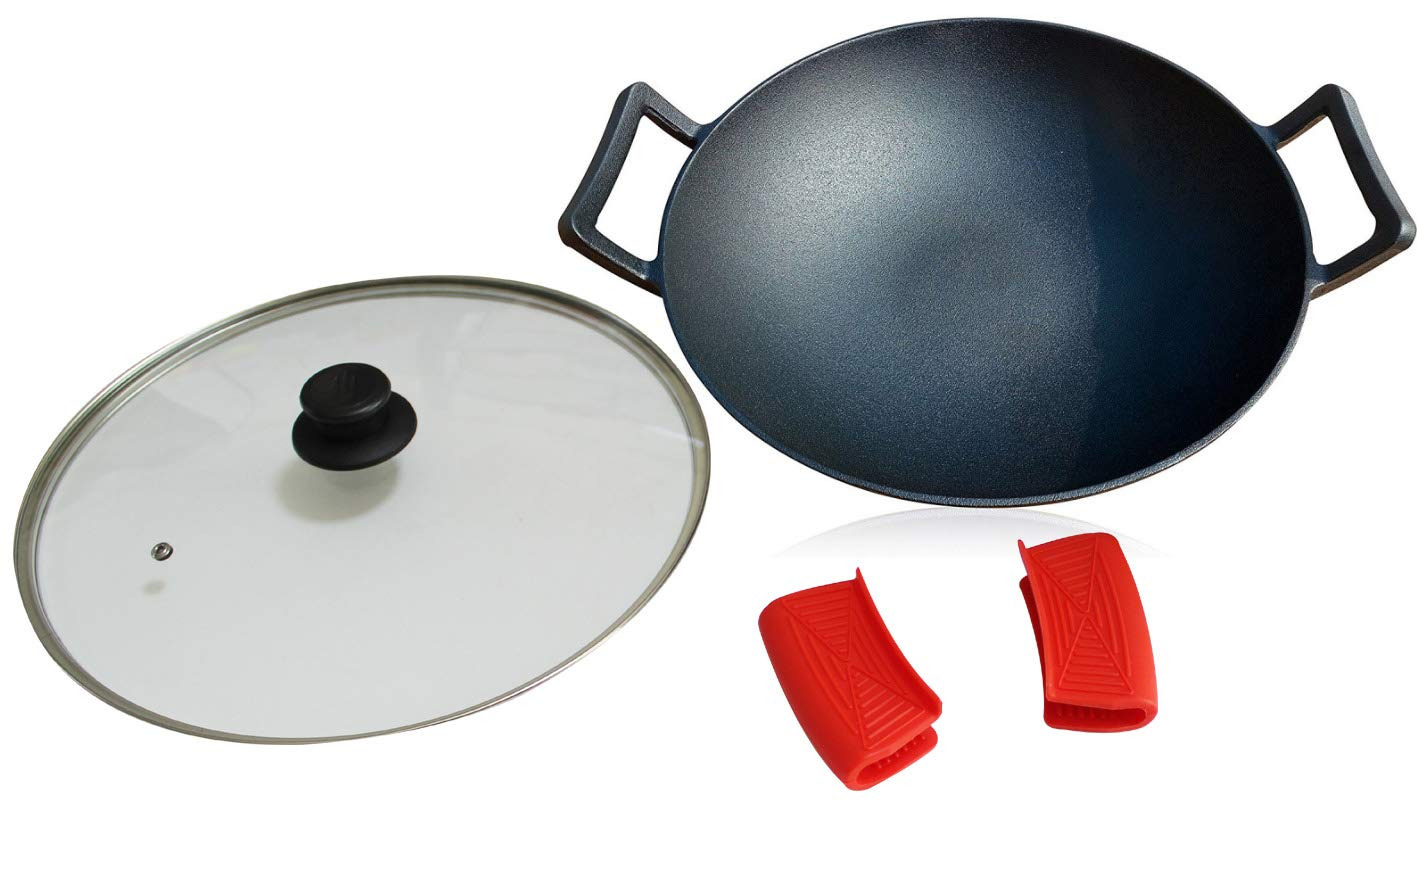 14-Inch Cast Iron Wok Set (Pre-Seasoned), Glass Lid & Silicone Hot Handle Holders by Crucible Cookware (Image #1)